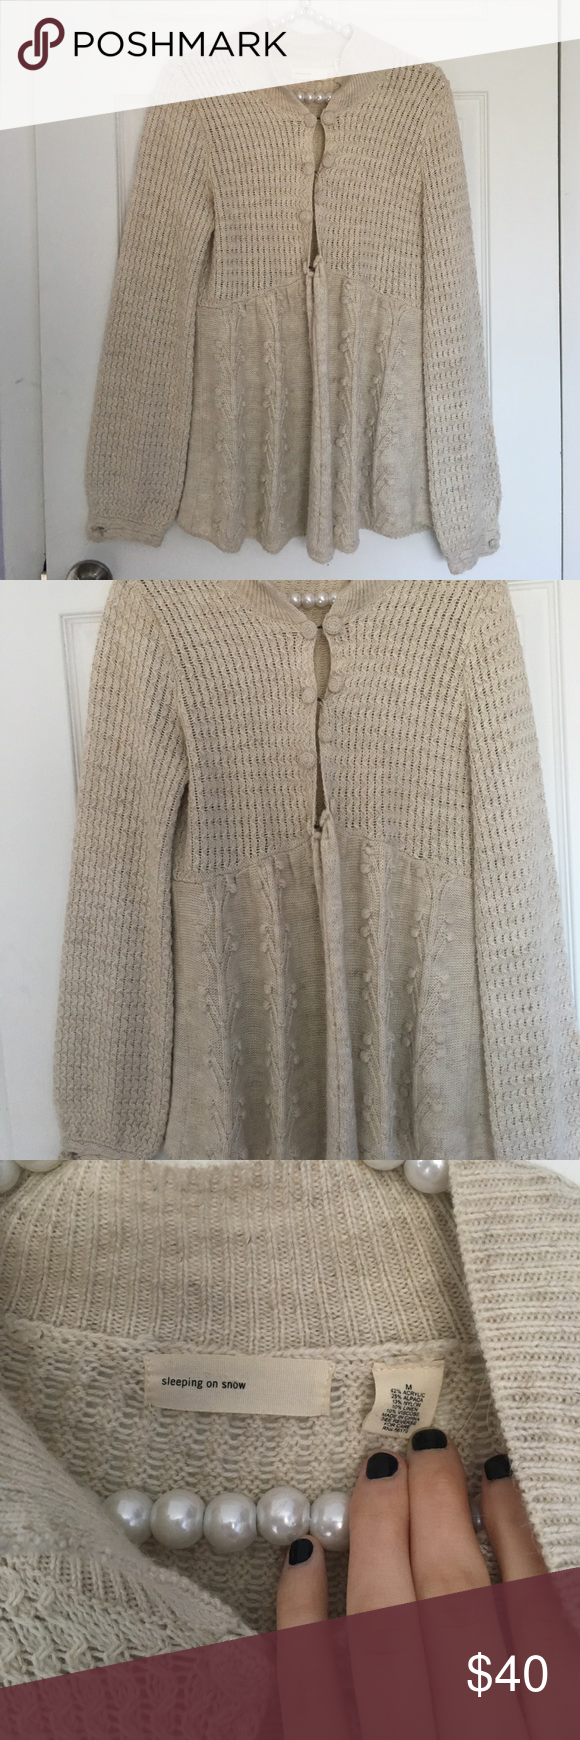 Anthropologie Cream Colored Knit Cardigan Excellent condition with ...